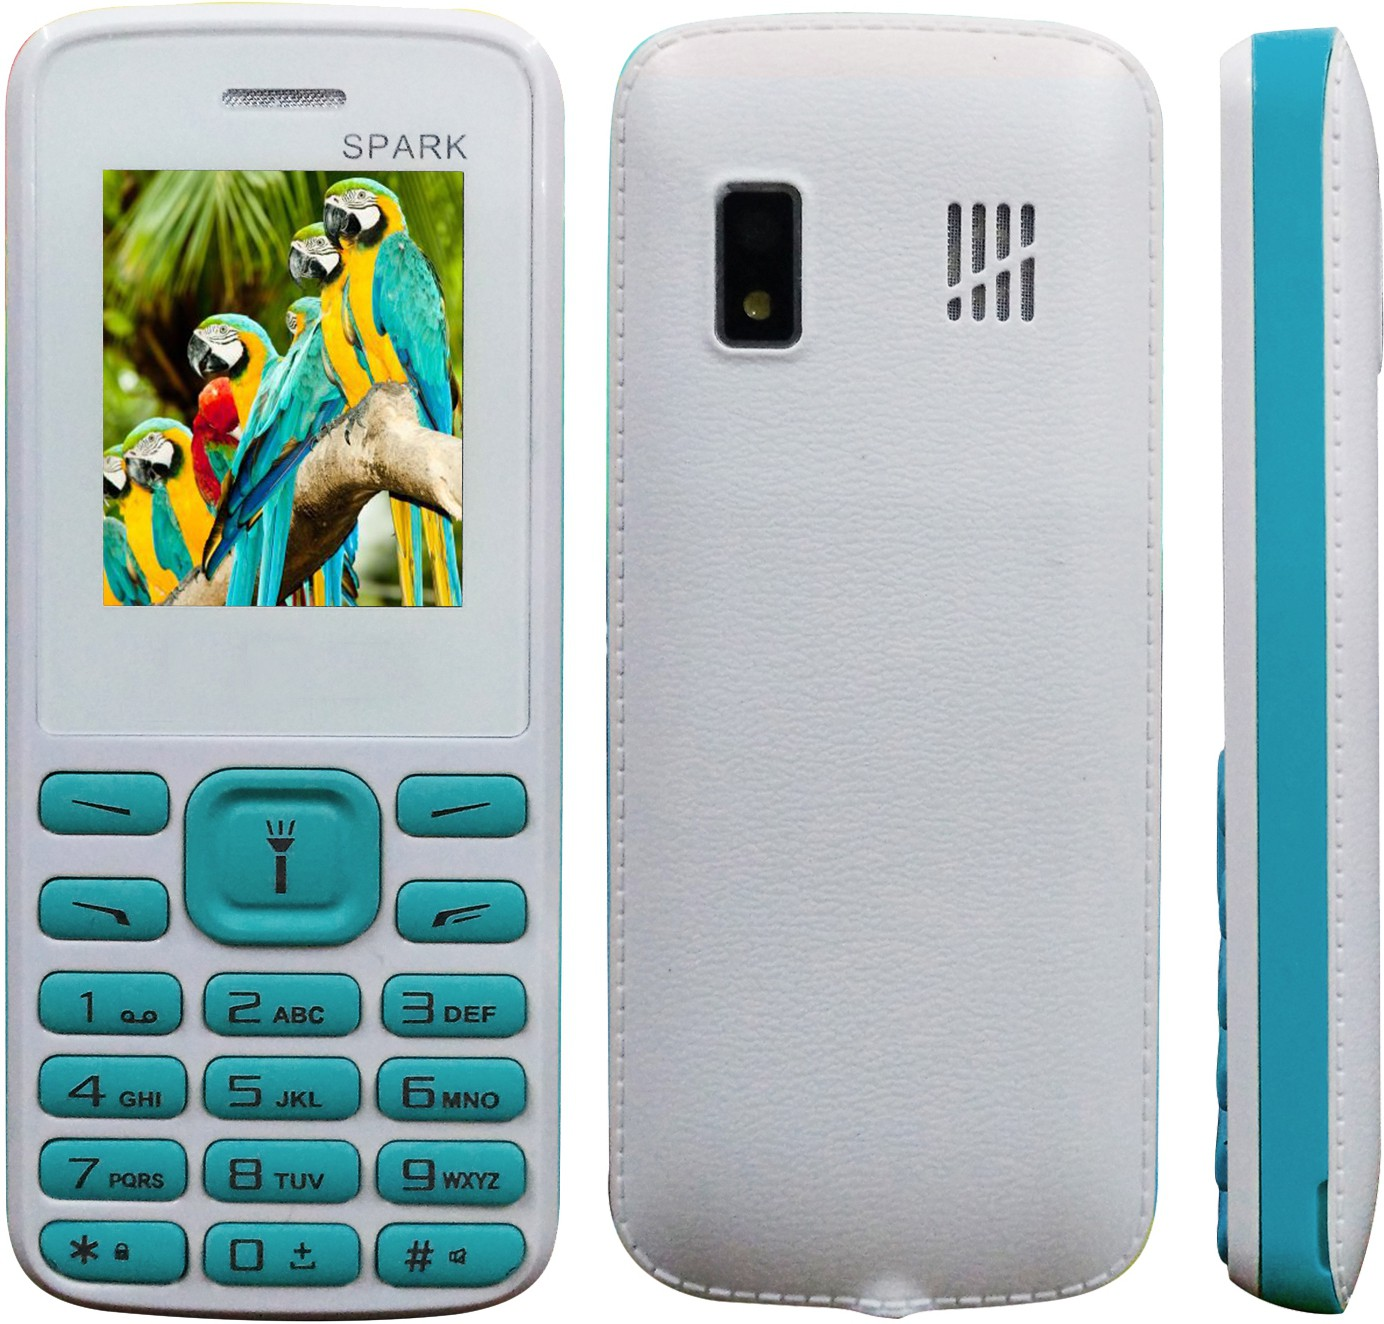 Mobi Store Spark(White and Blue)